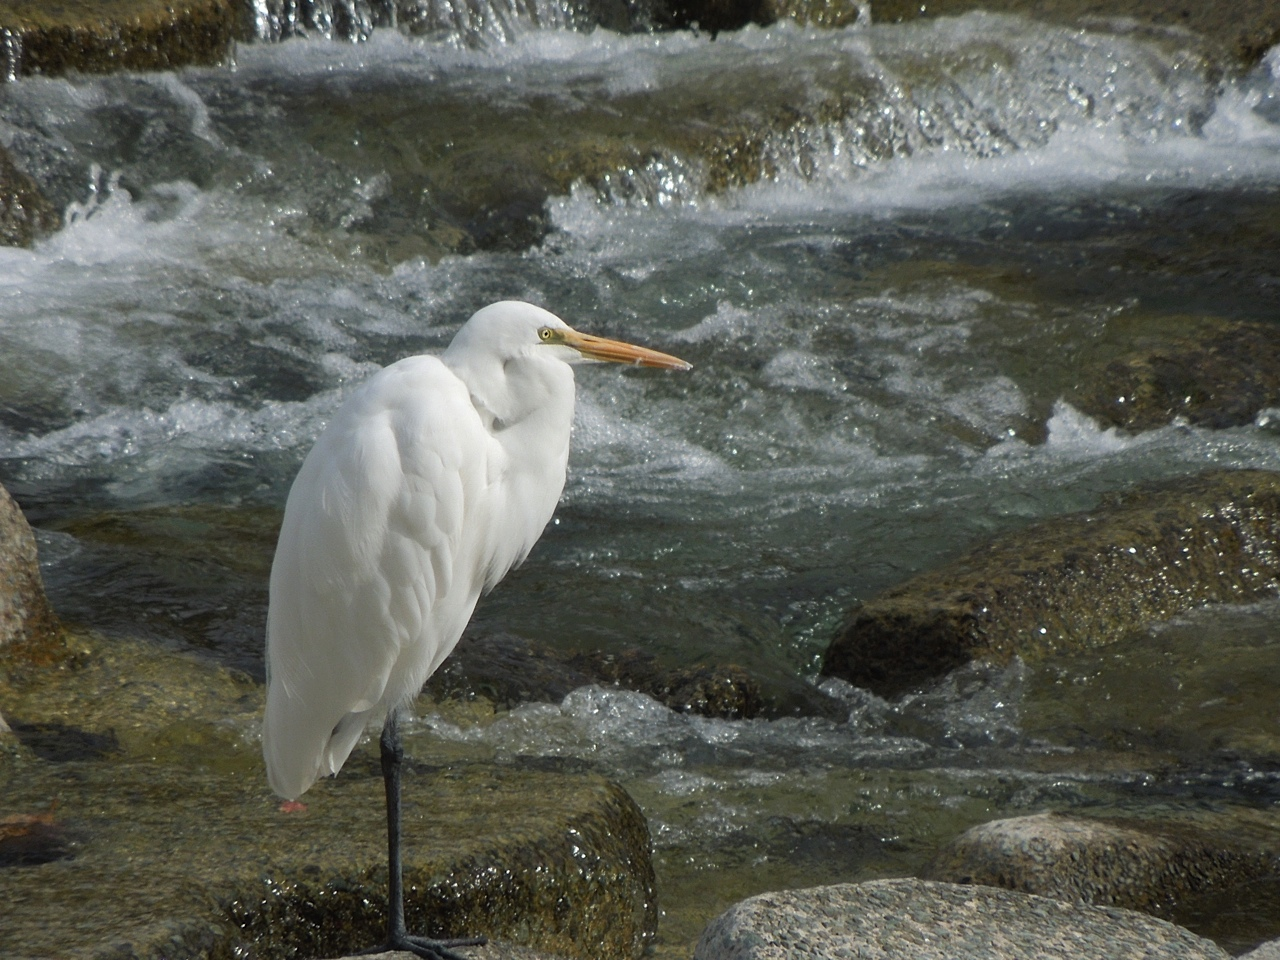 An egret rests on one-leg, determined not to stick its neck out.